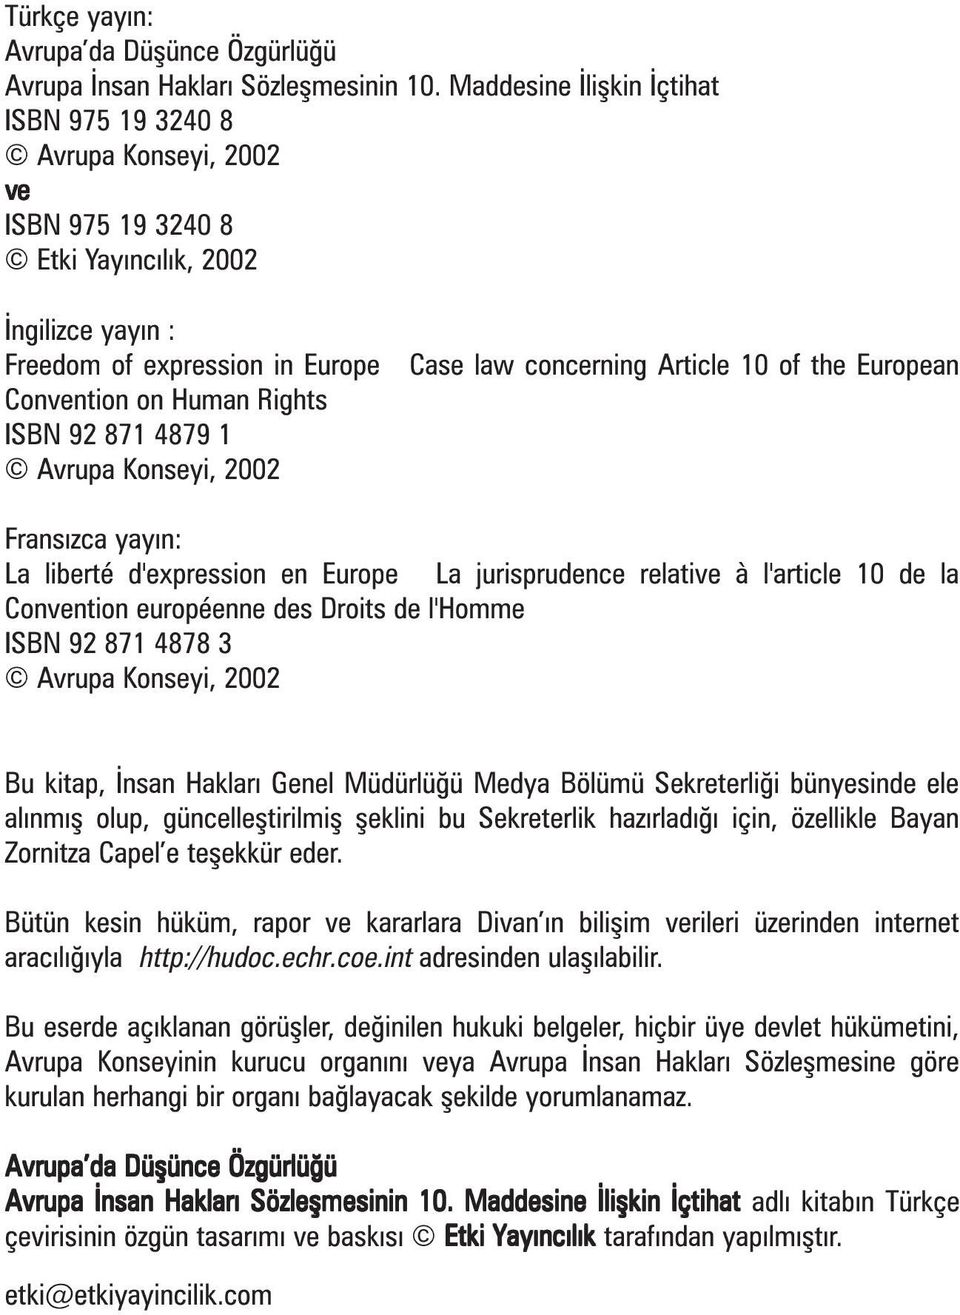 4879 1 Avrupa Konseyi, 2002 Case law concerning Article 10 of the European Fransýzca yayýn: La liberté d'expression en Europe La jurisprudence relative à l'article 10 de la Convention européenne des